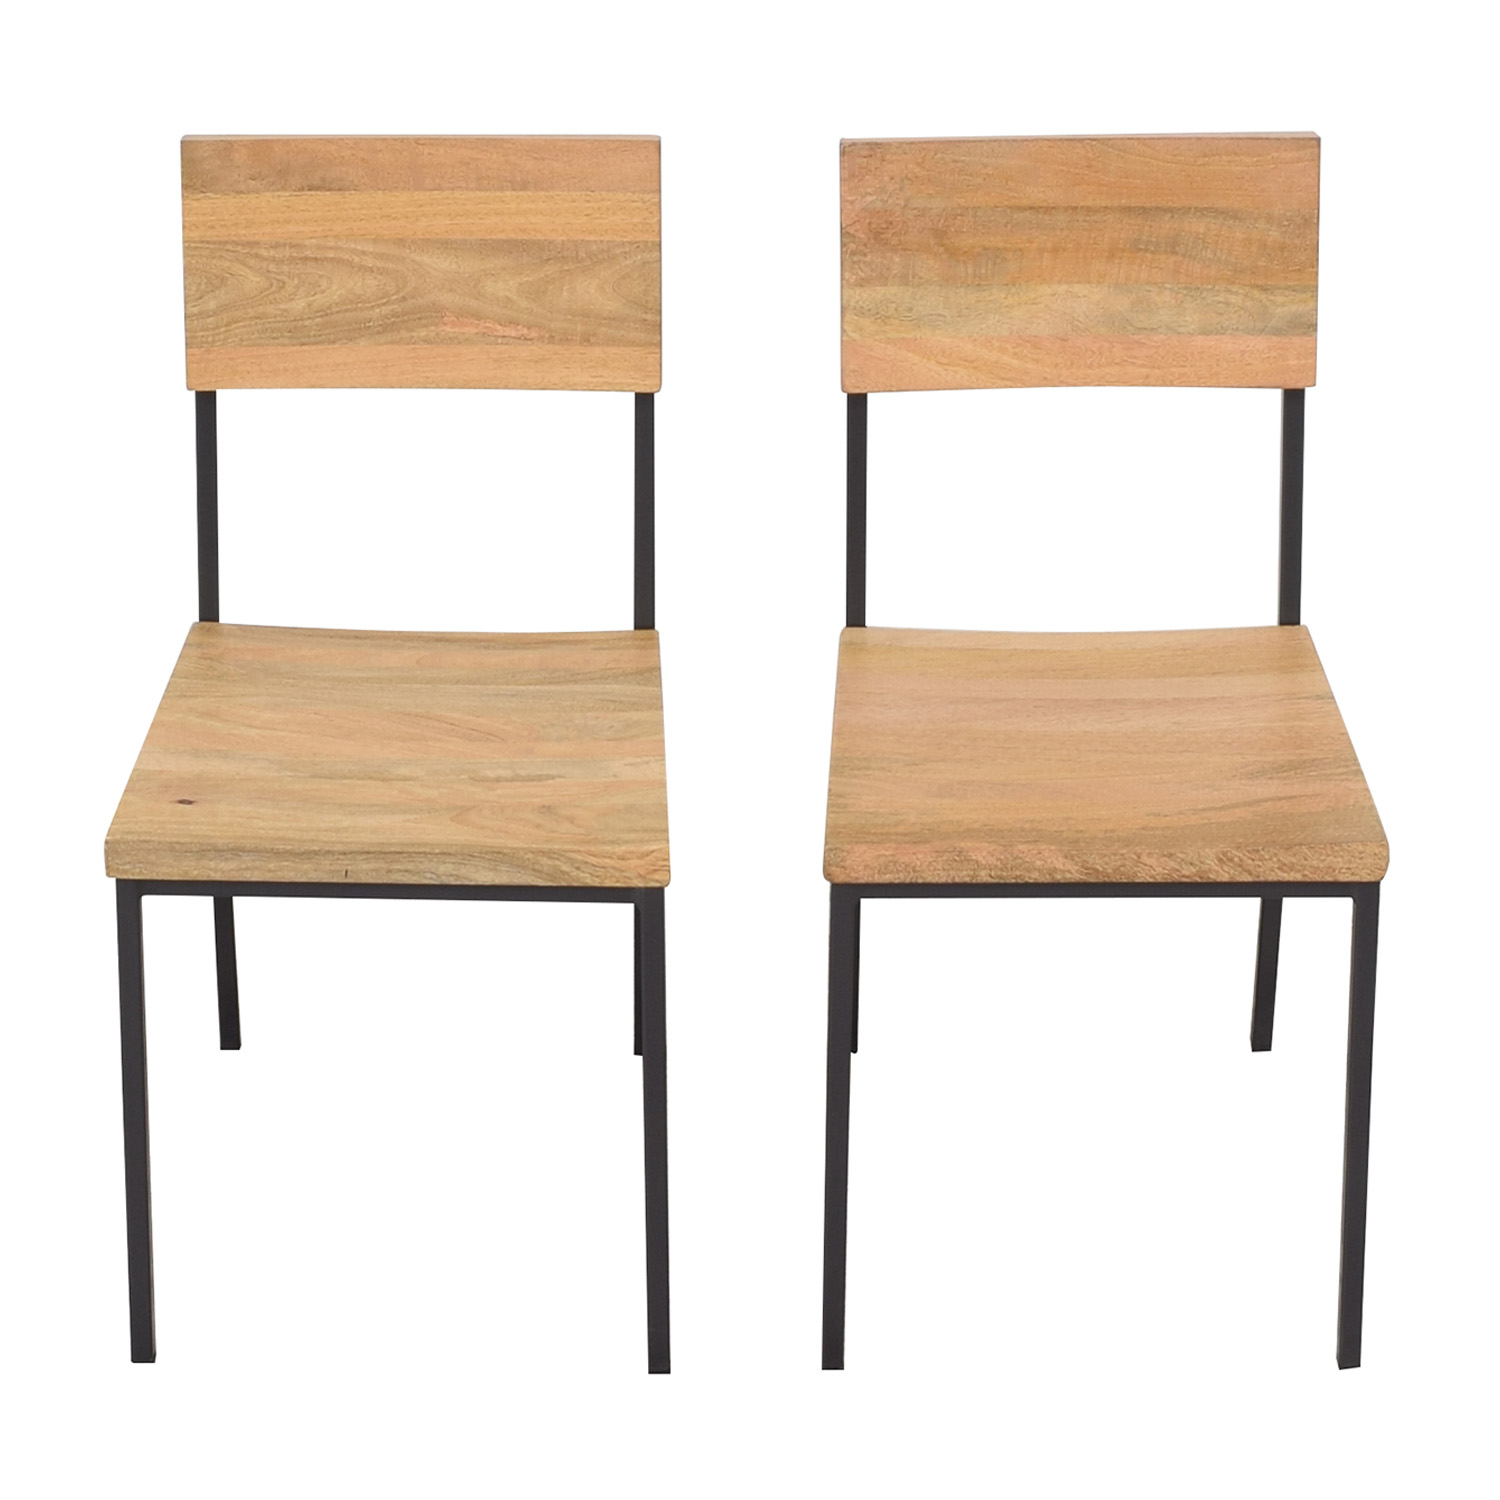 West Elm West Elm Rustic Dining Chairs Chairs